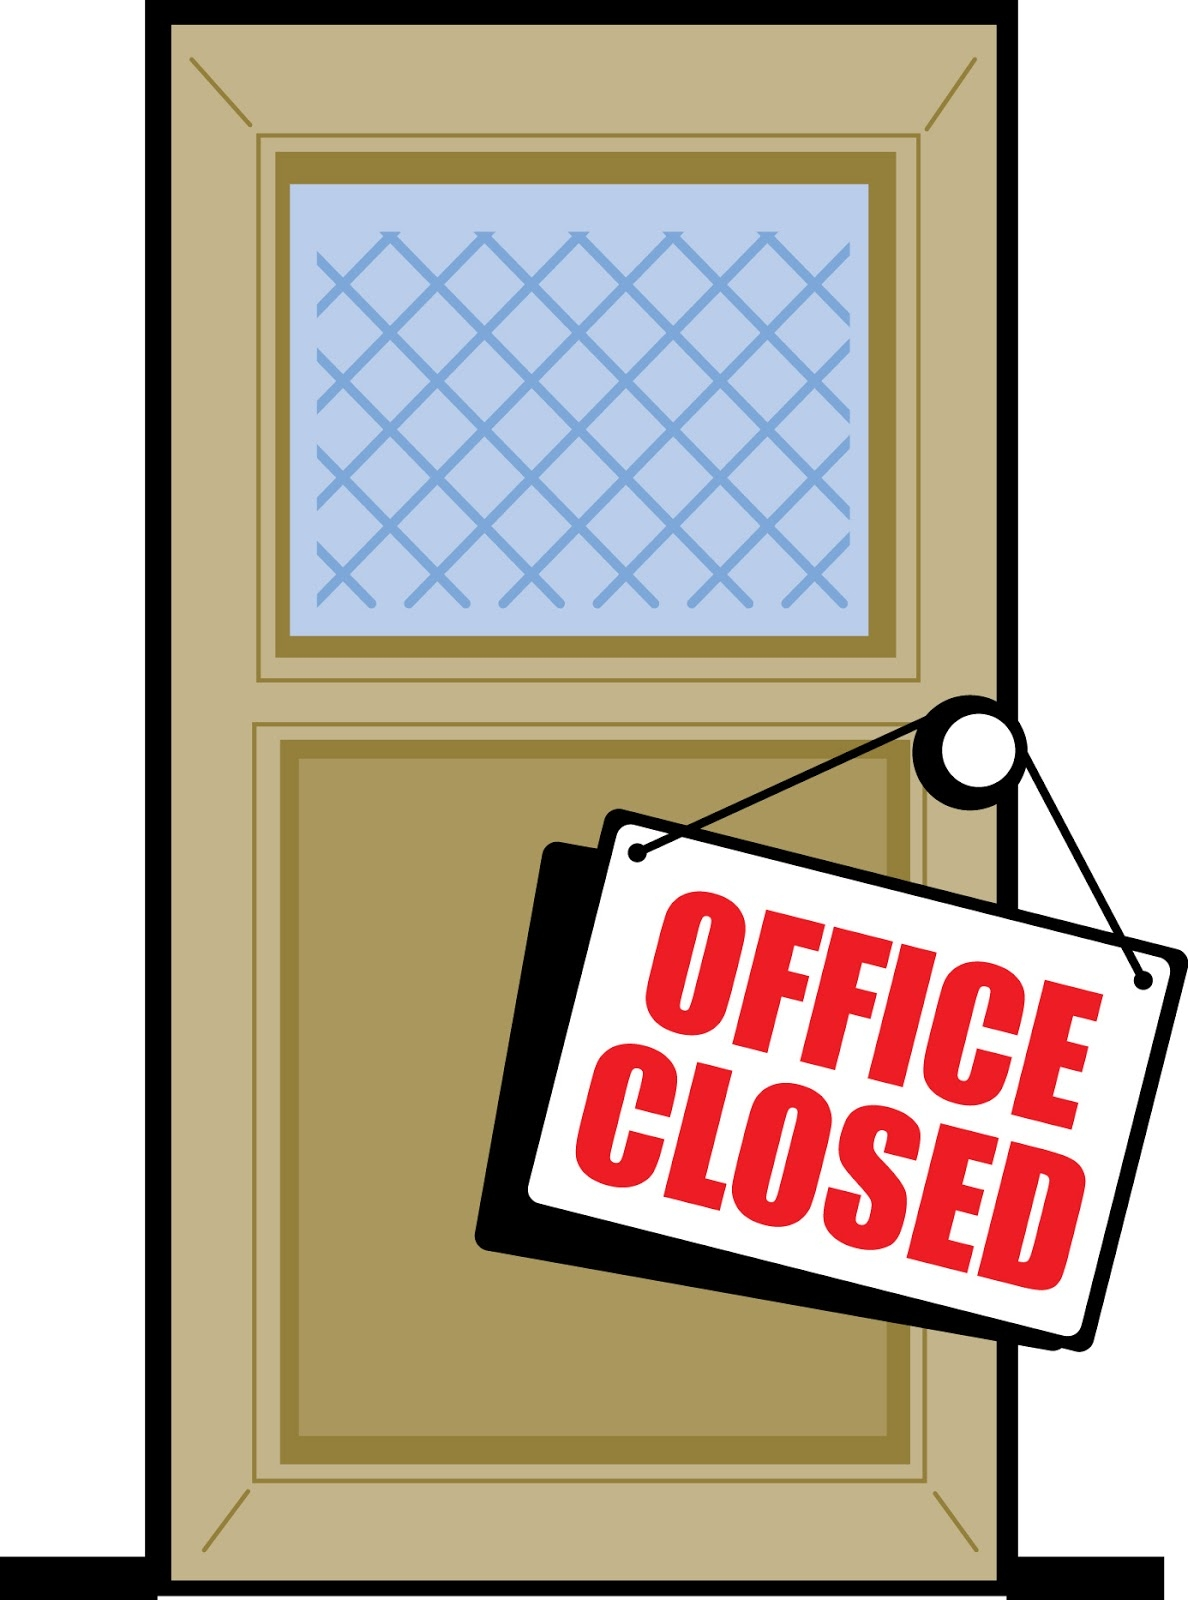 Office Closed Clip Art.